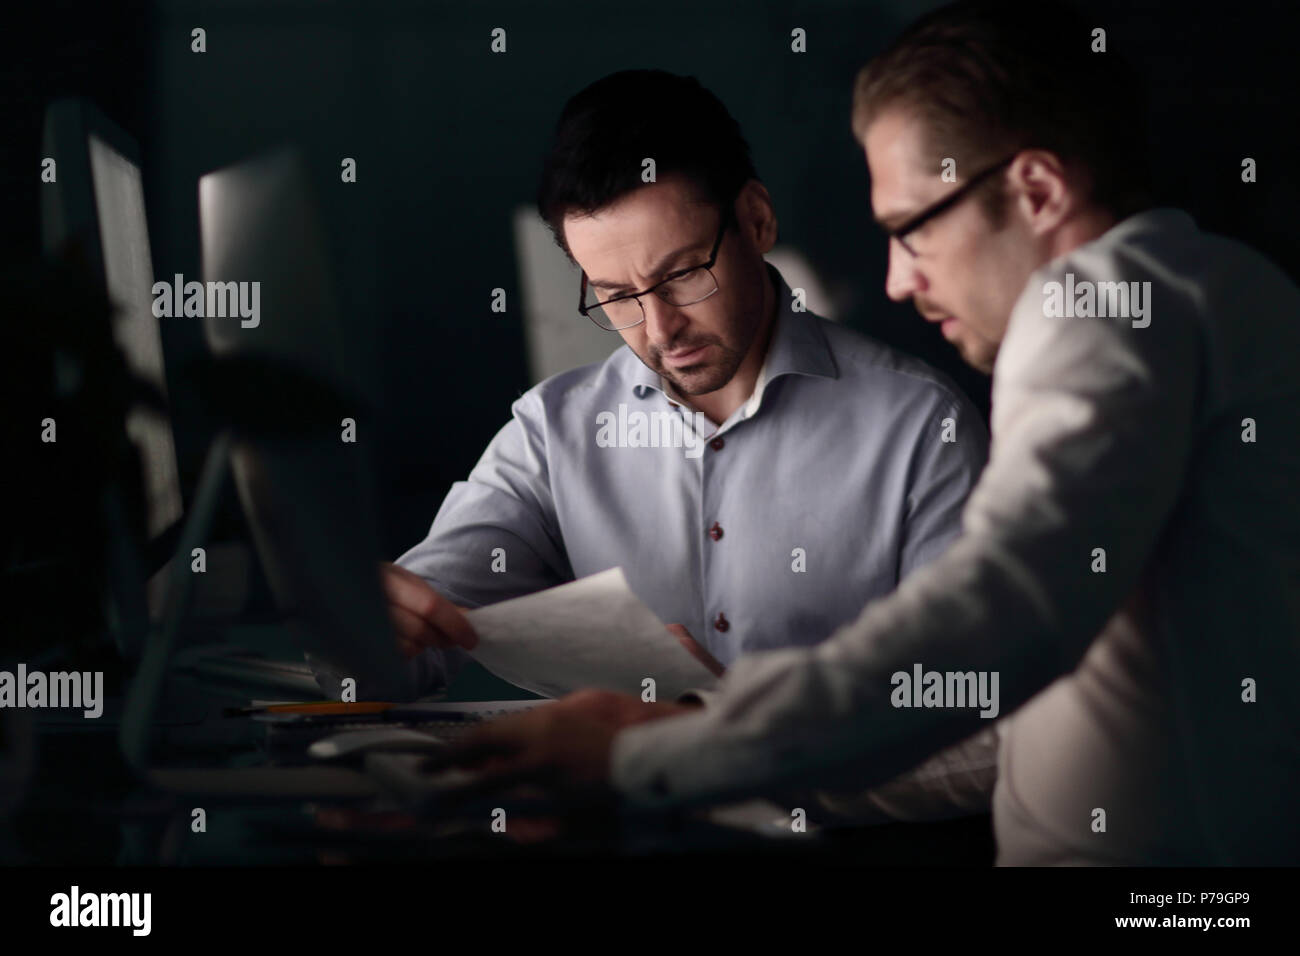 employees in the workplace overtime. - Stock Image